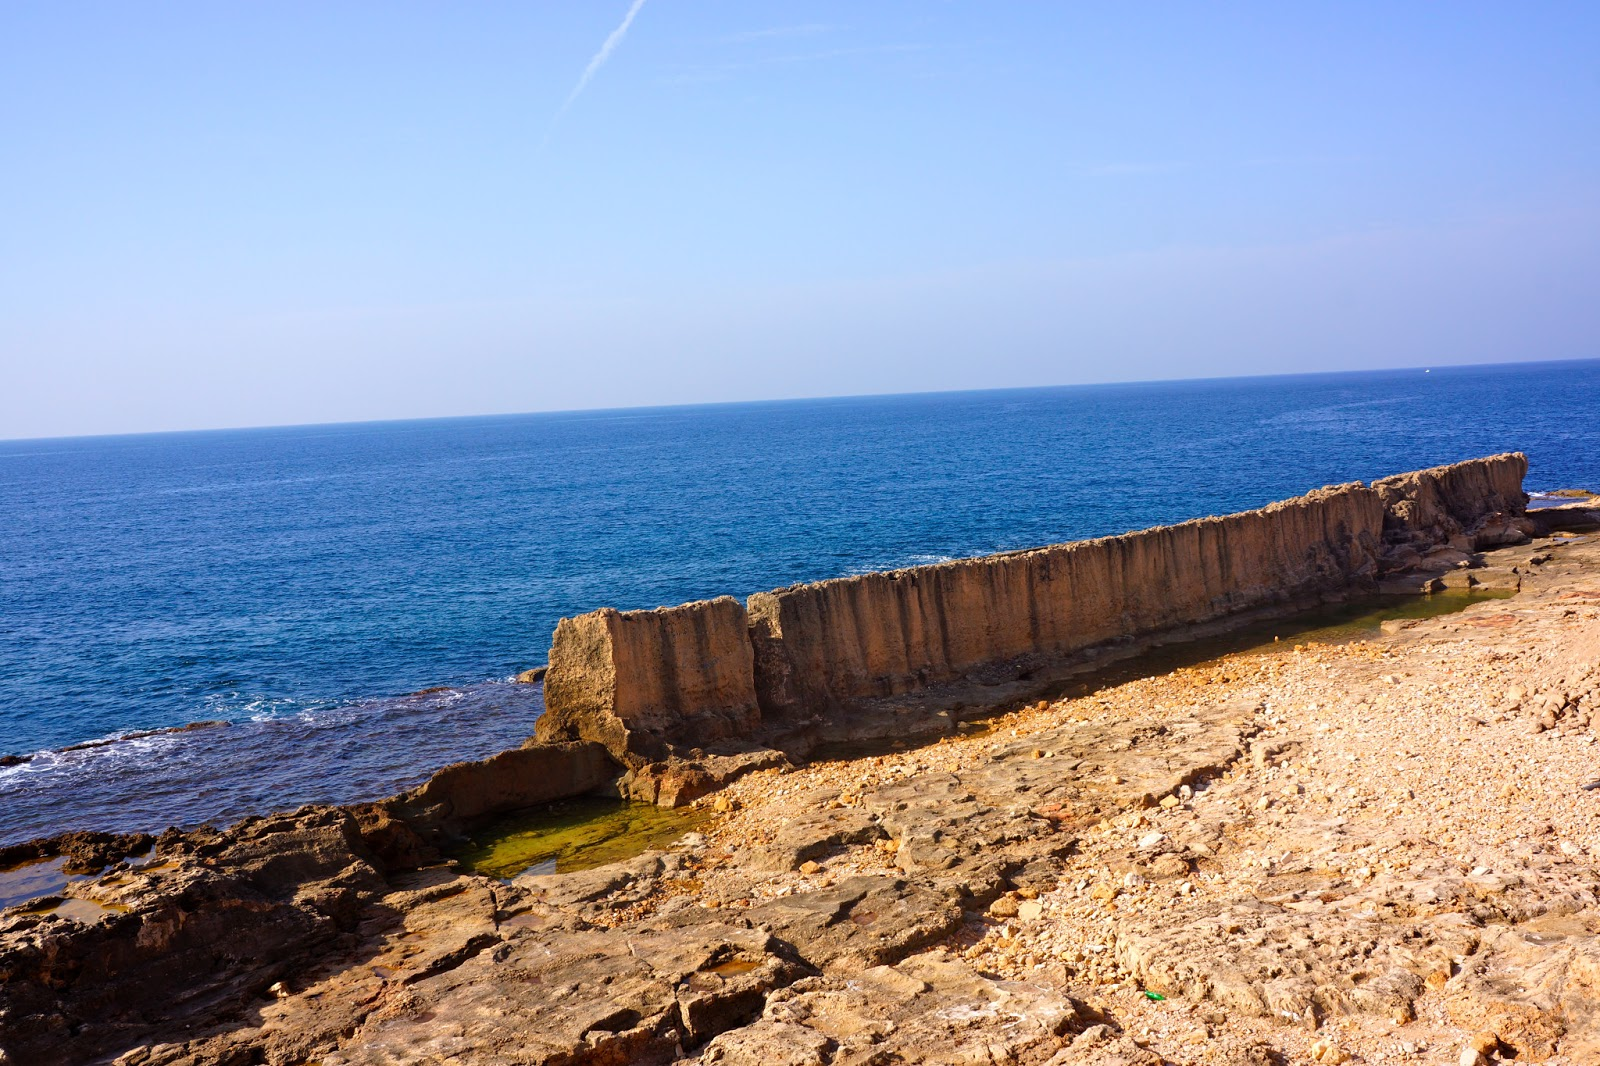 The marine wall seen from the old town in Batroun, Lebanon.